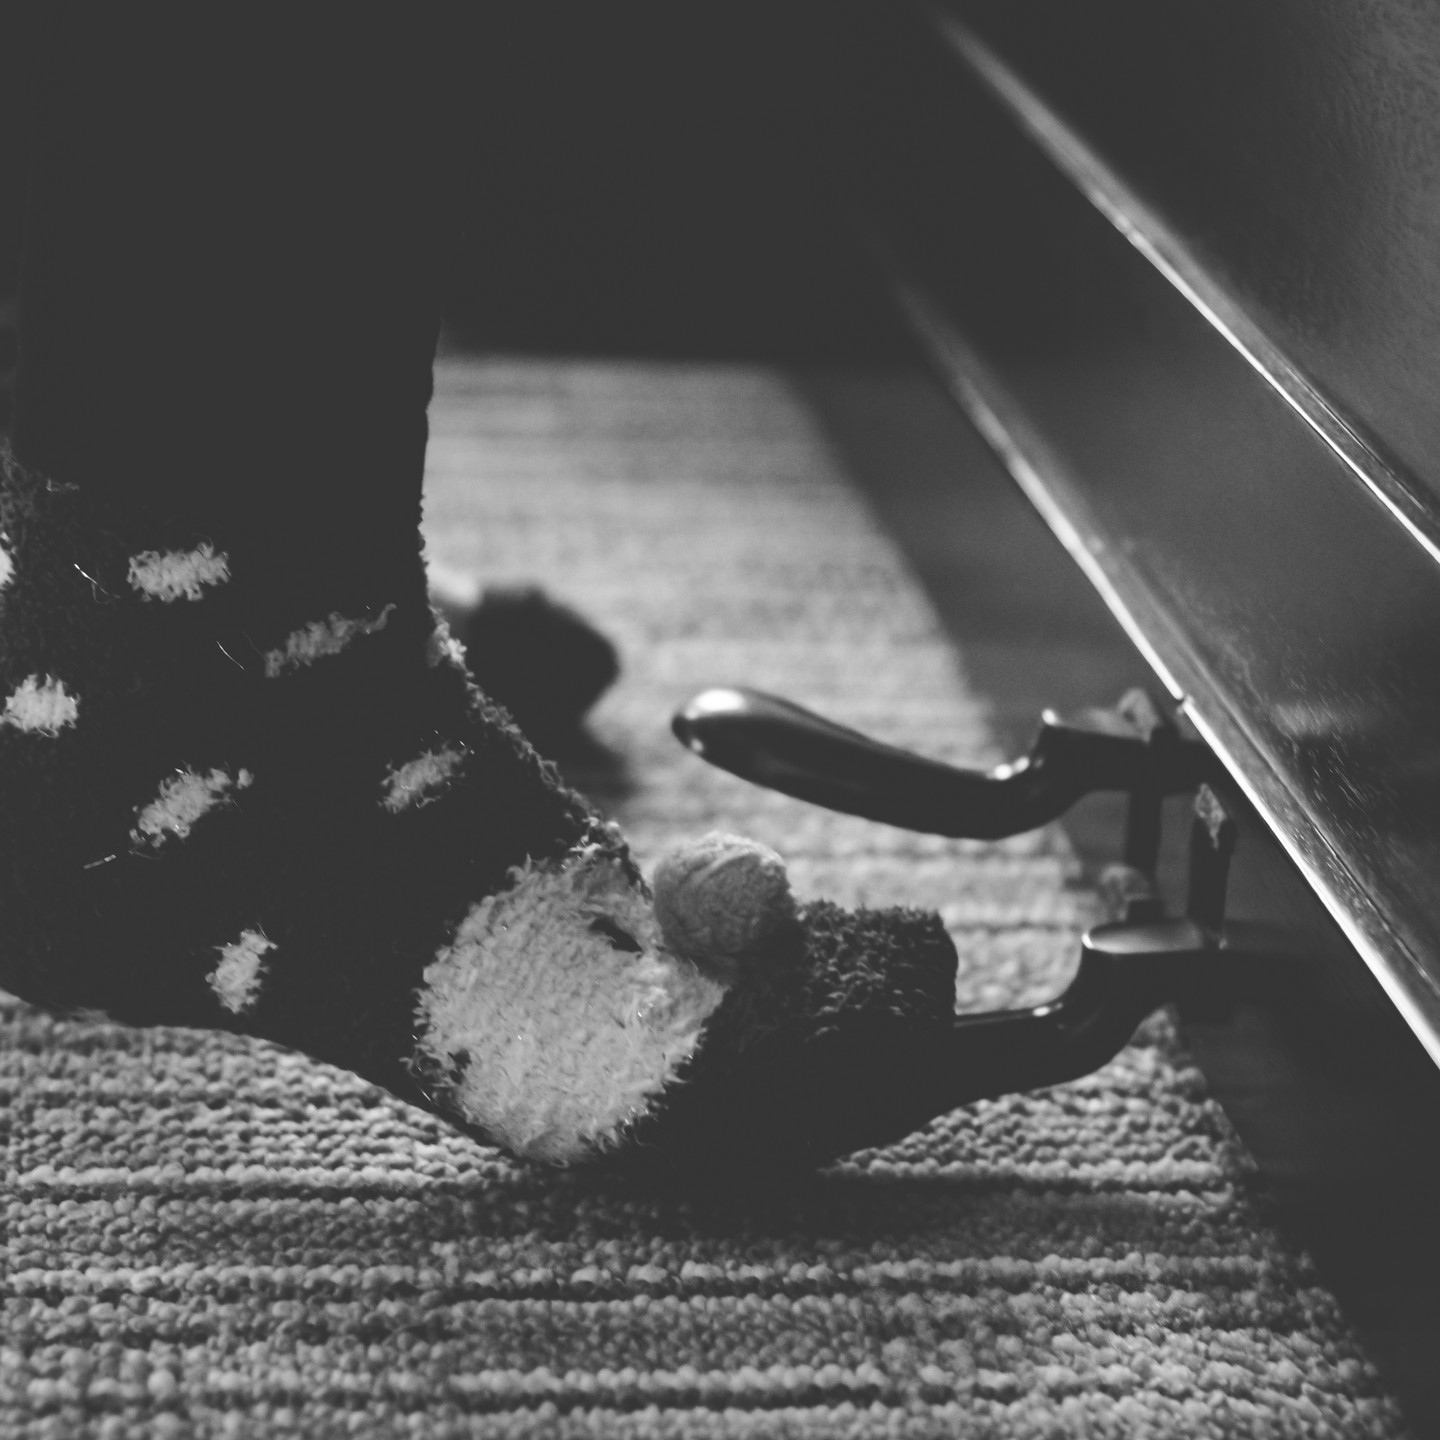 Family Photoshoot Birmingham, close up black & white shot of a young girl playing the piano, detail close up of her foot on the peddle of the piano